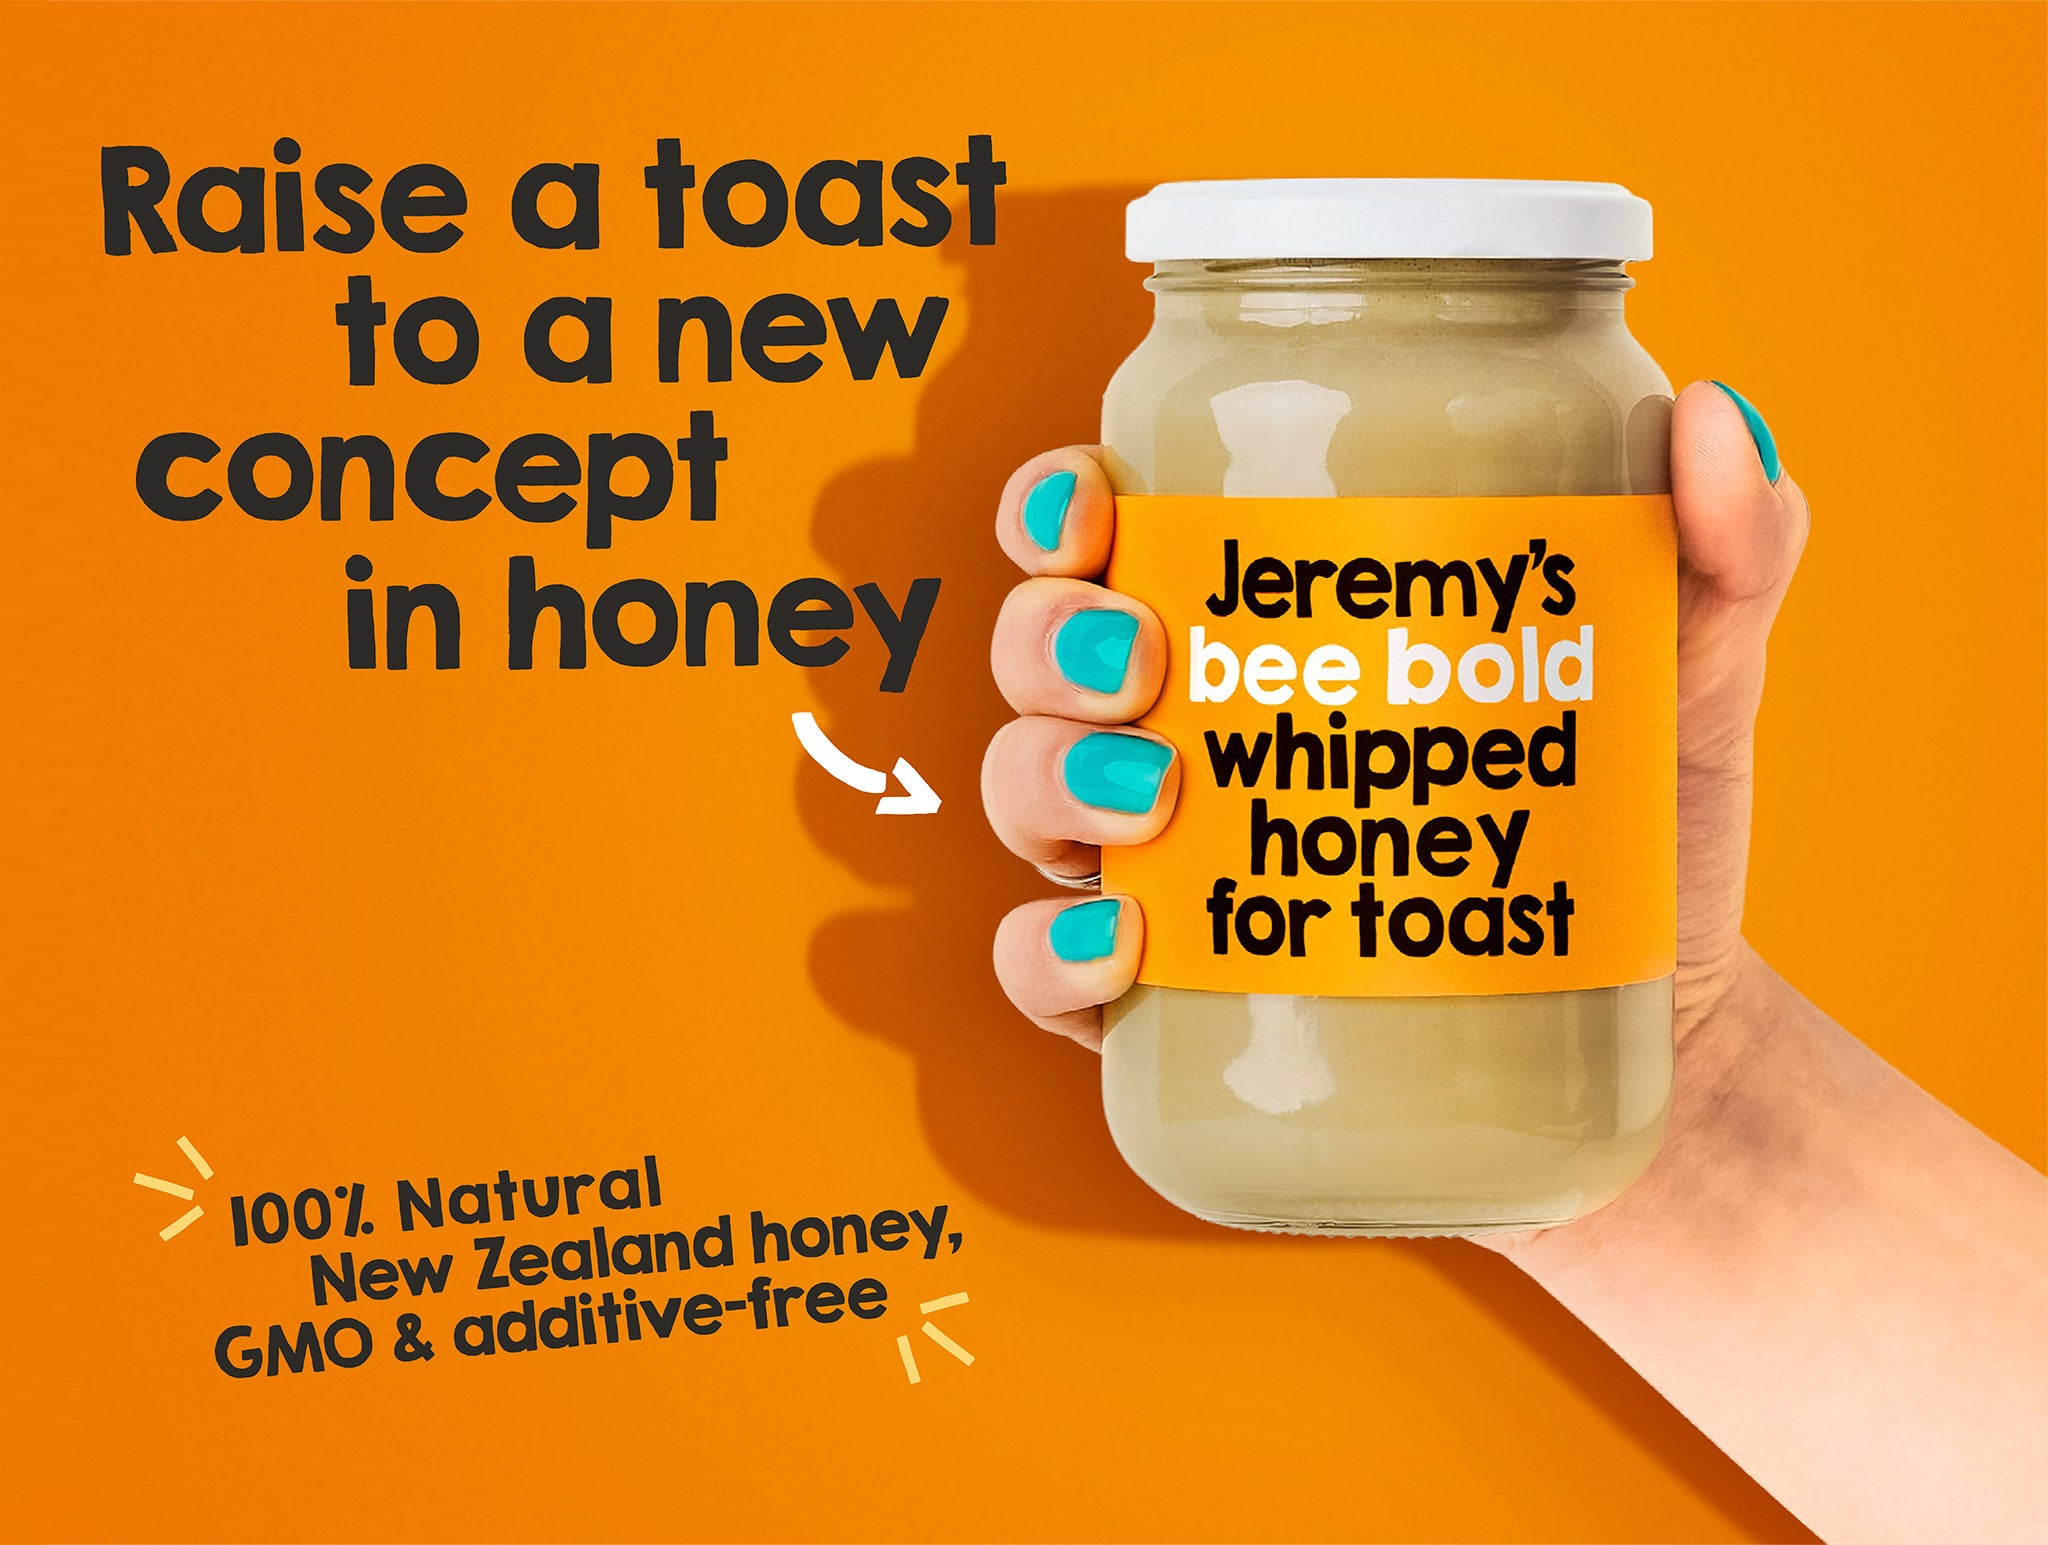 Jeremy's Whipped Honey for Toast